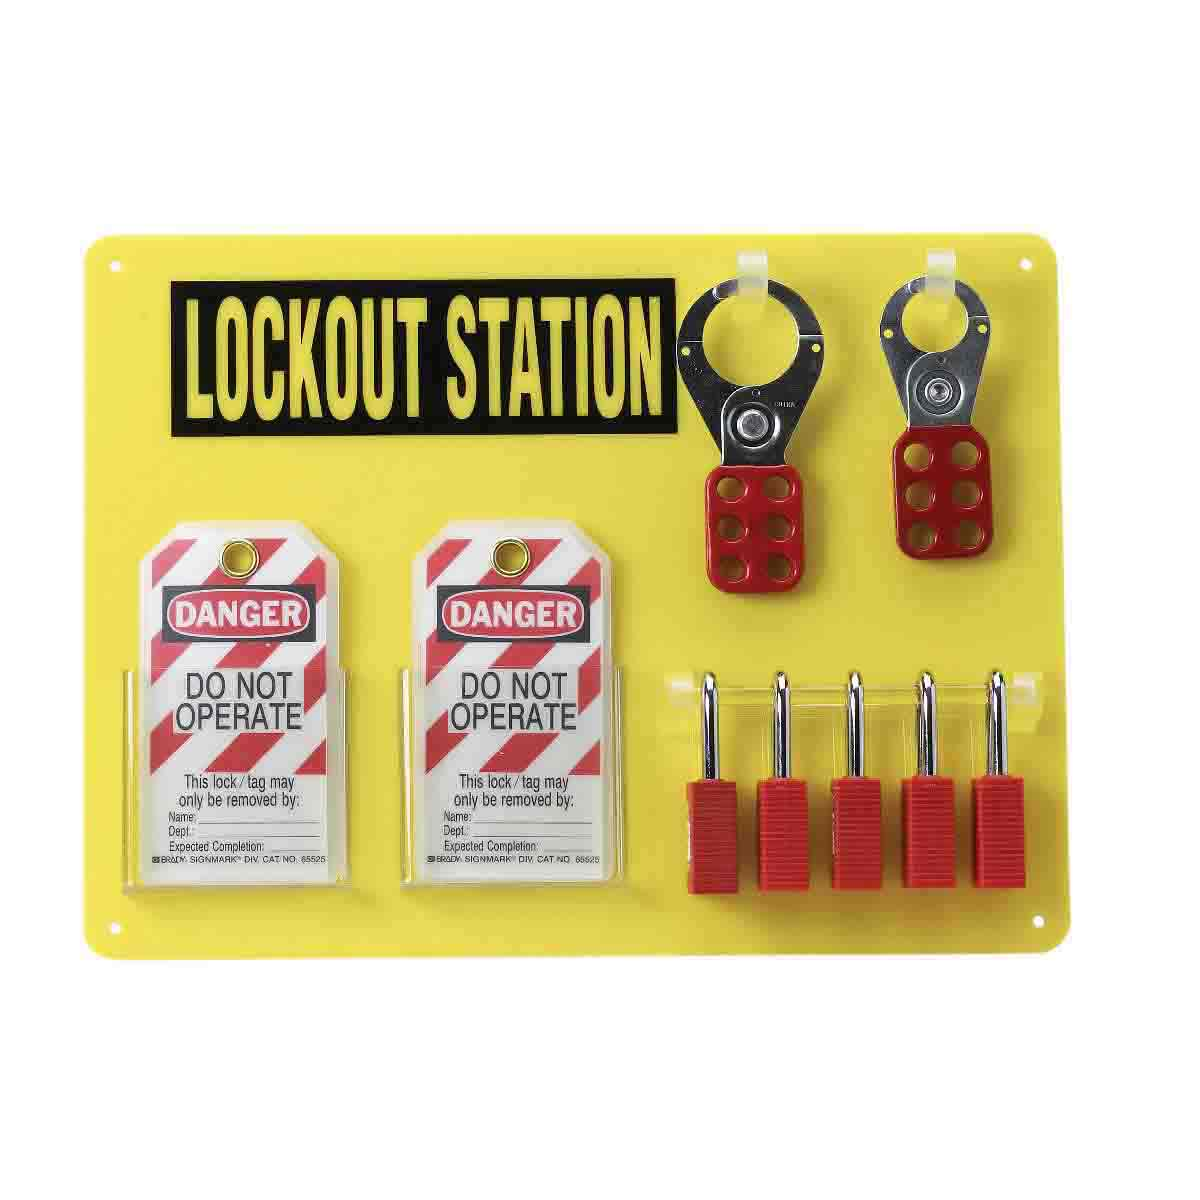 Brady® 51181 Padlock Center Lockout Station, Filled, 19 Pieces, 5 Padlocks, 11-1/2 in H x 15-1/2 in W x 3/16 in D, Wall Mount, Language: English